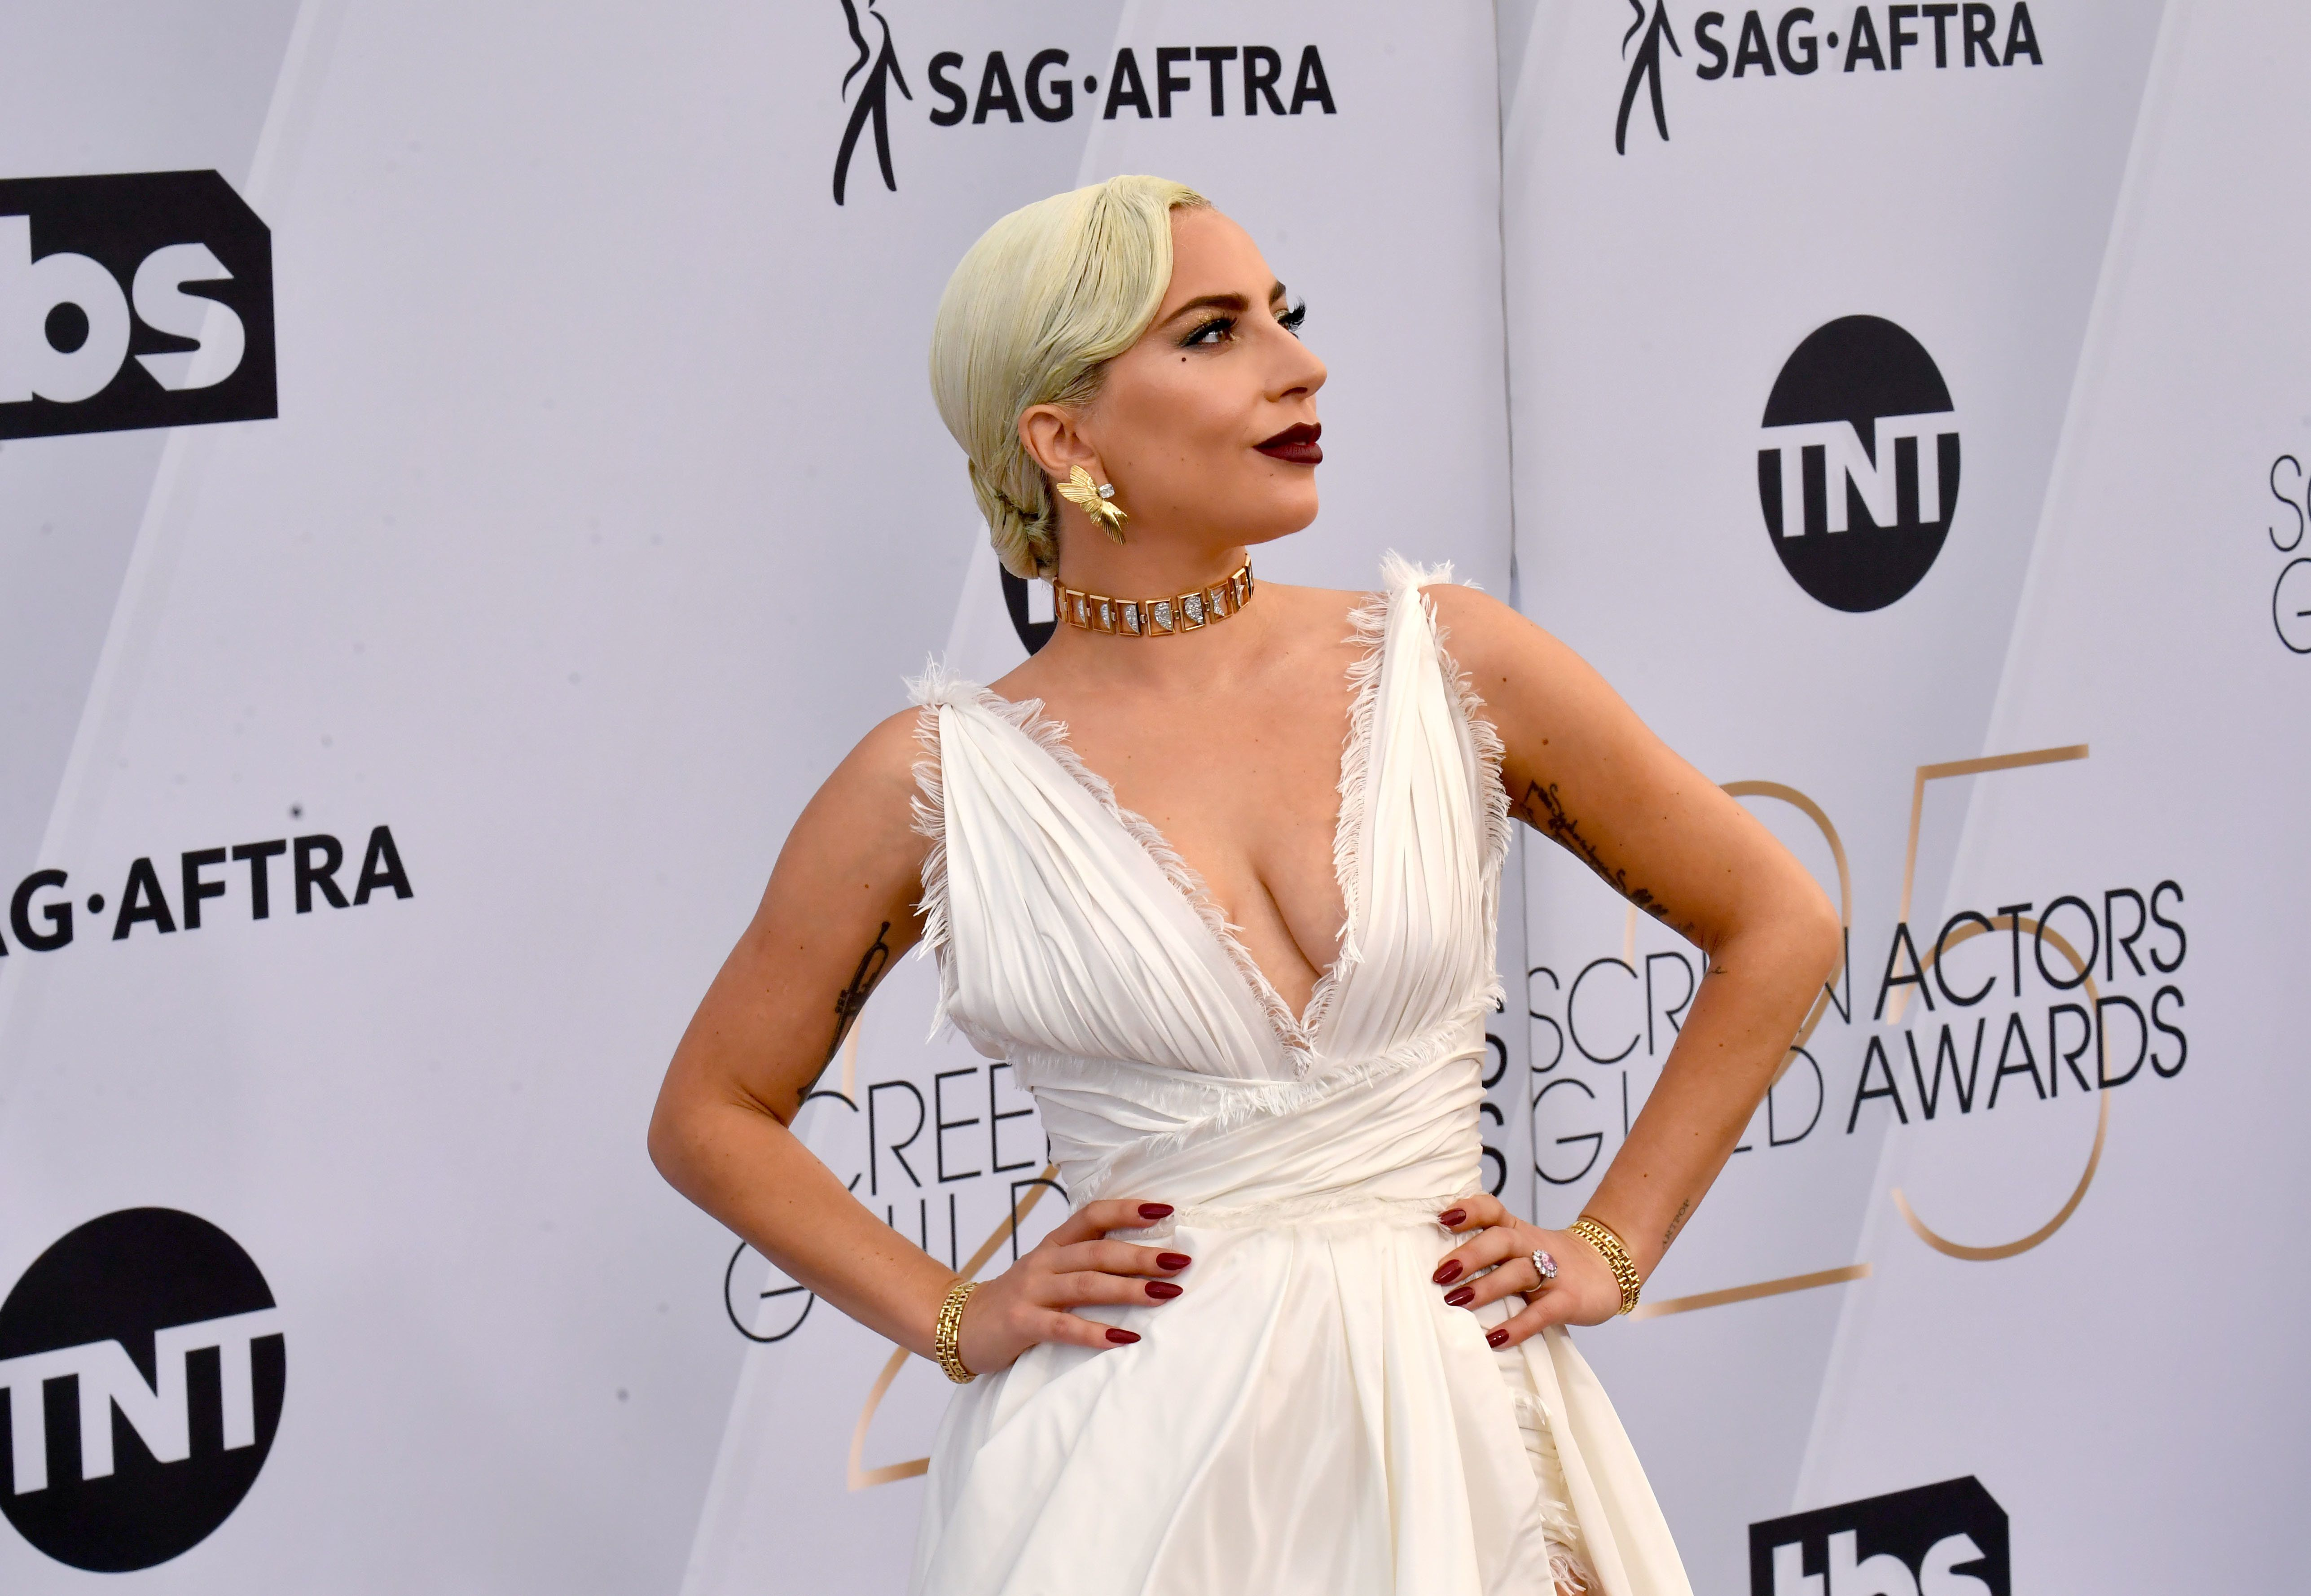 LOS ANGELES, CALIFORNIA - JANUARY 27:  Lady Gaga  attends the 25th Annual Screen Actors Guild Awards at The Shrine Auditorium on January 27, 2019 in Los Angeles, California. (Photo by Jeff Kravitz/FilmMagic)